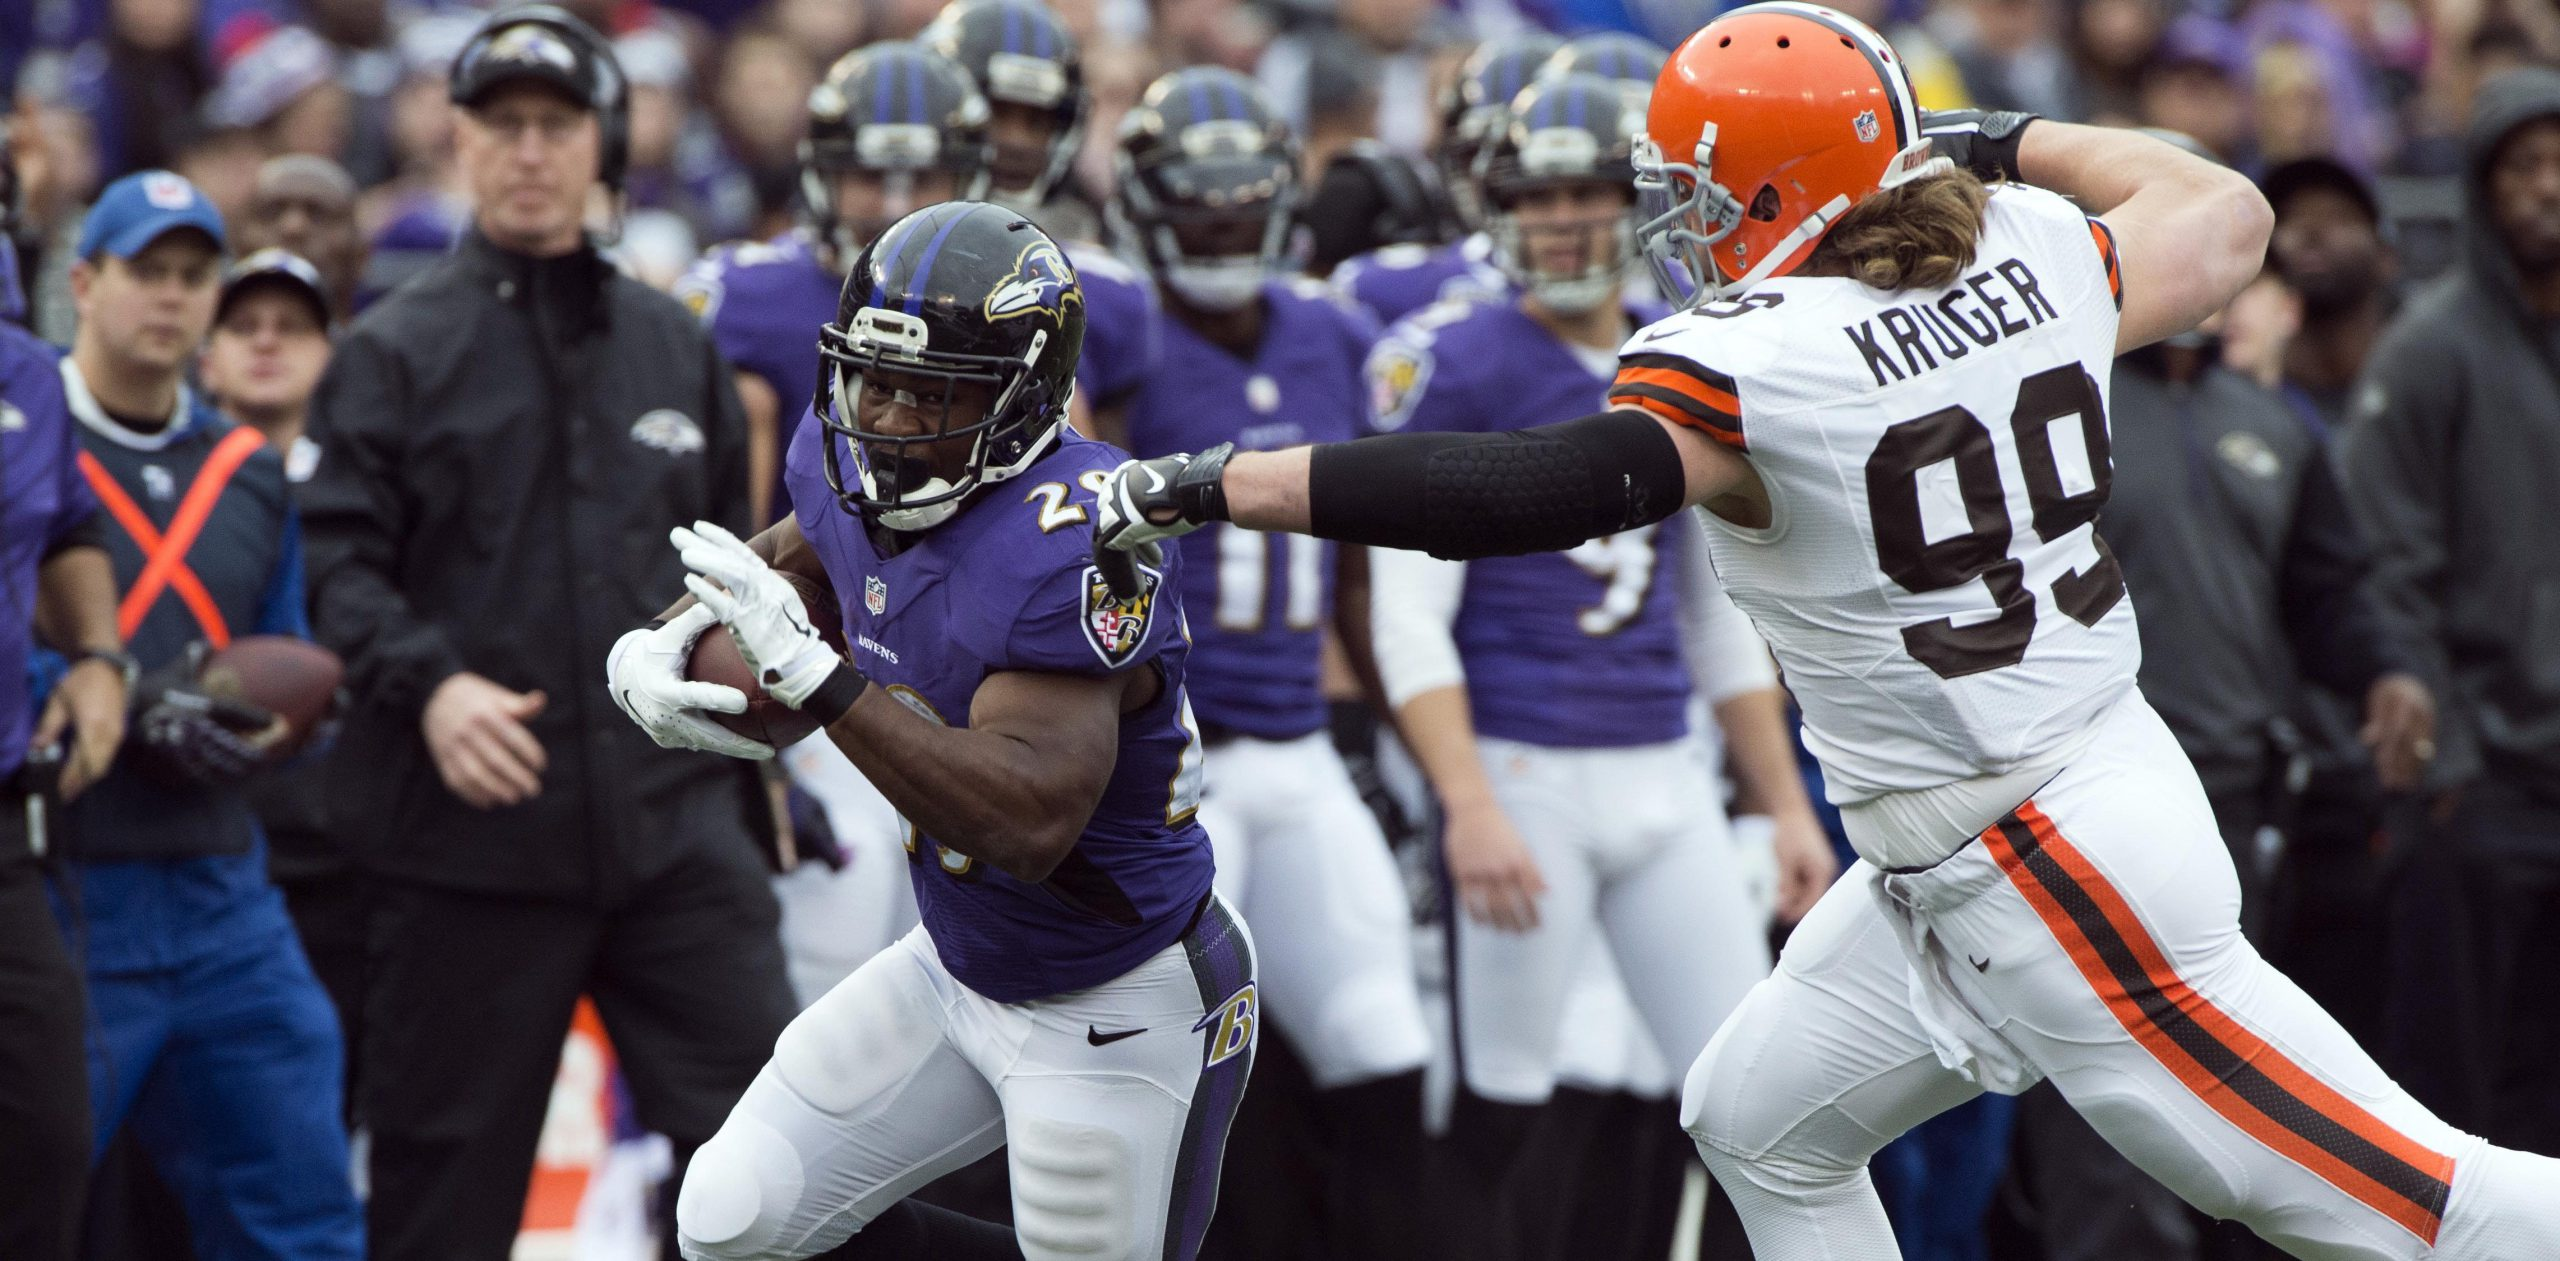 Dec 28, 2014; Baltimore, MD, USA; Baltimore Ravens running back Justin Forsett (29) runs past Cleveland Browns outside linebacker Paul Kruger (99) during the first quarter at M&T Bank Stadium. Mandatory Credit: Tommy Gilligan-USA TODAY Sports